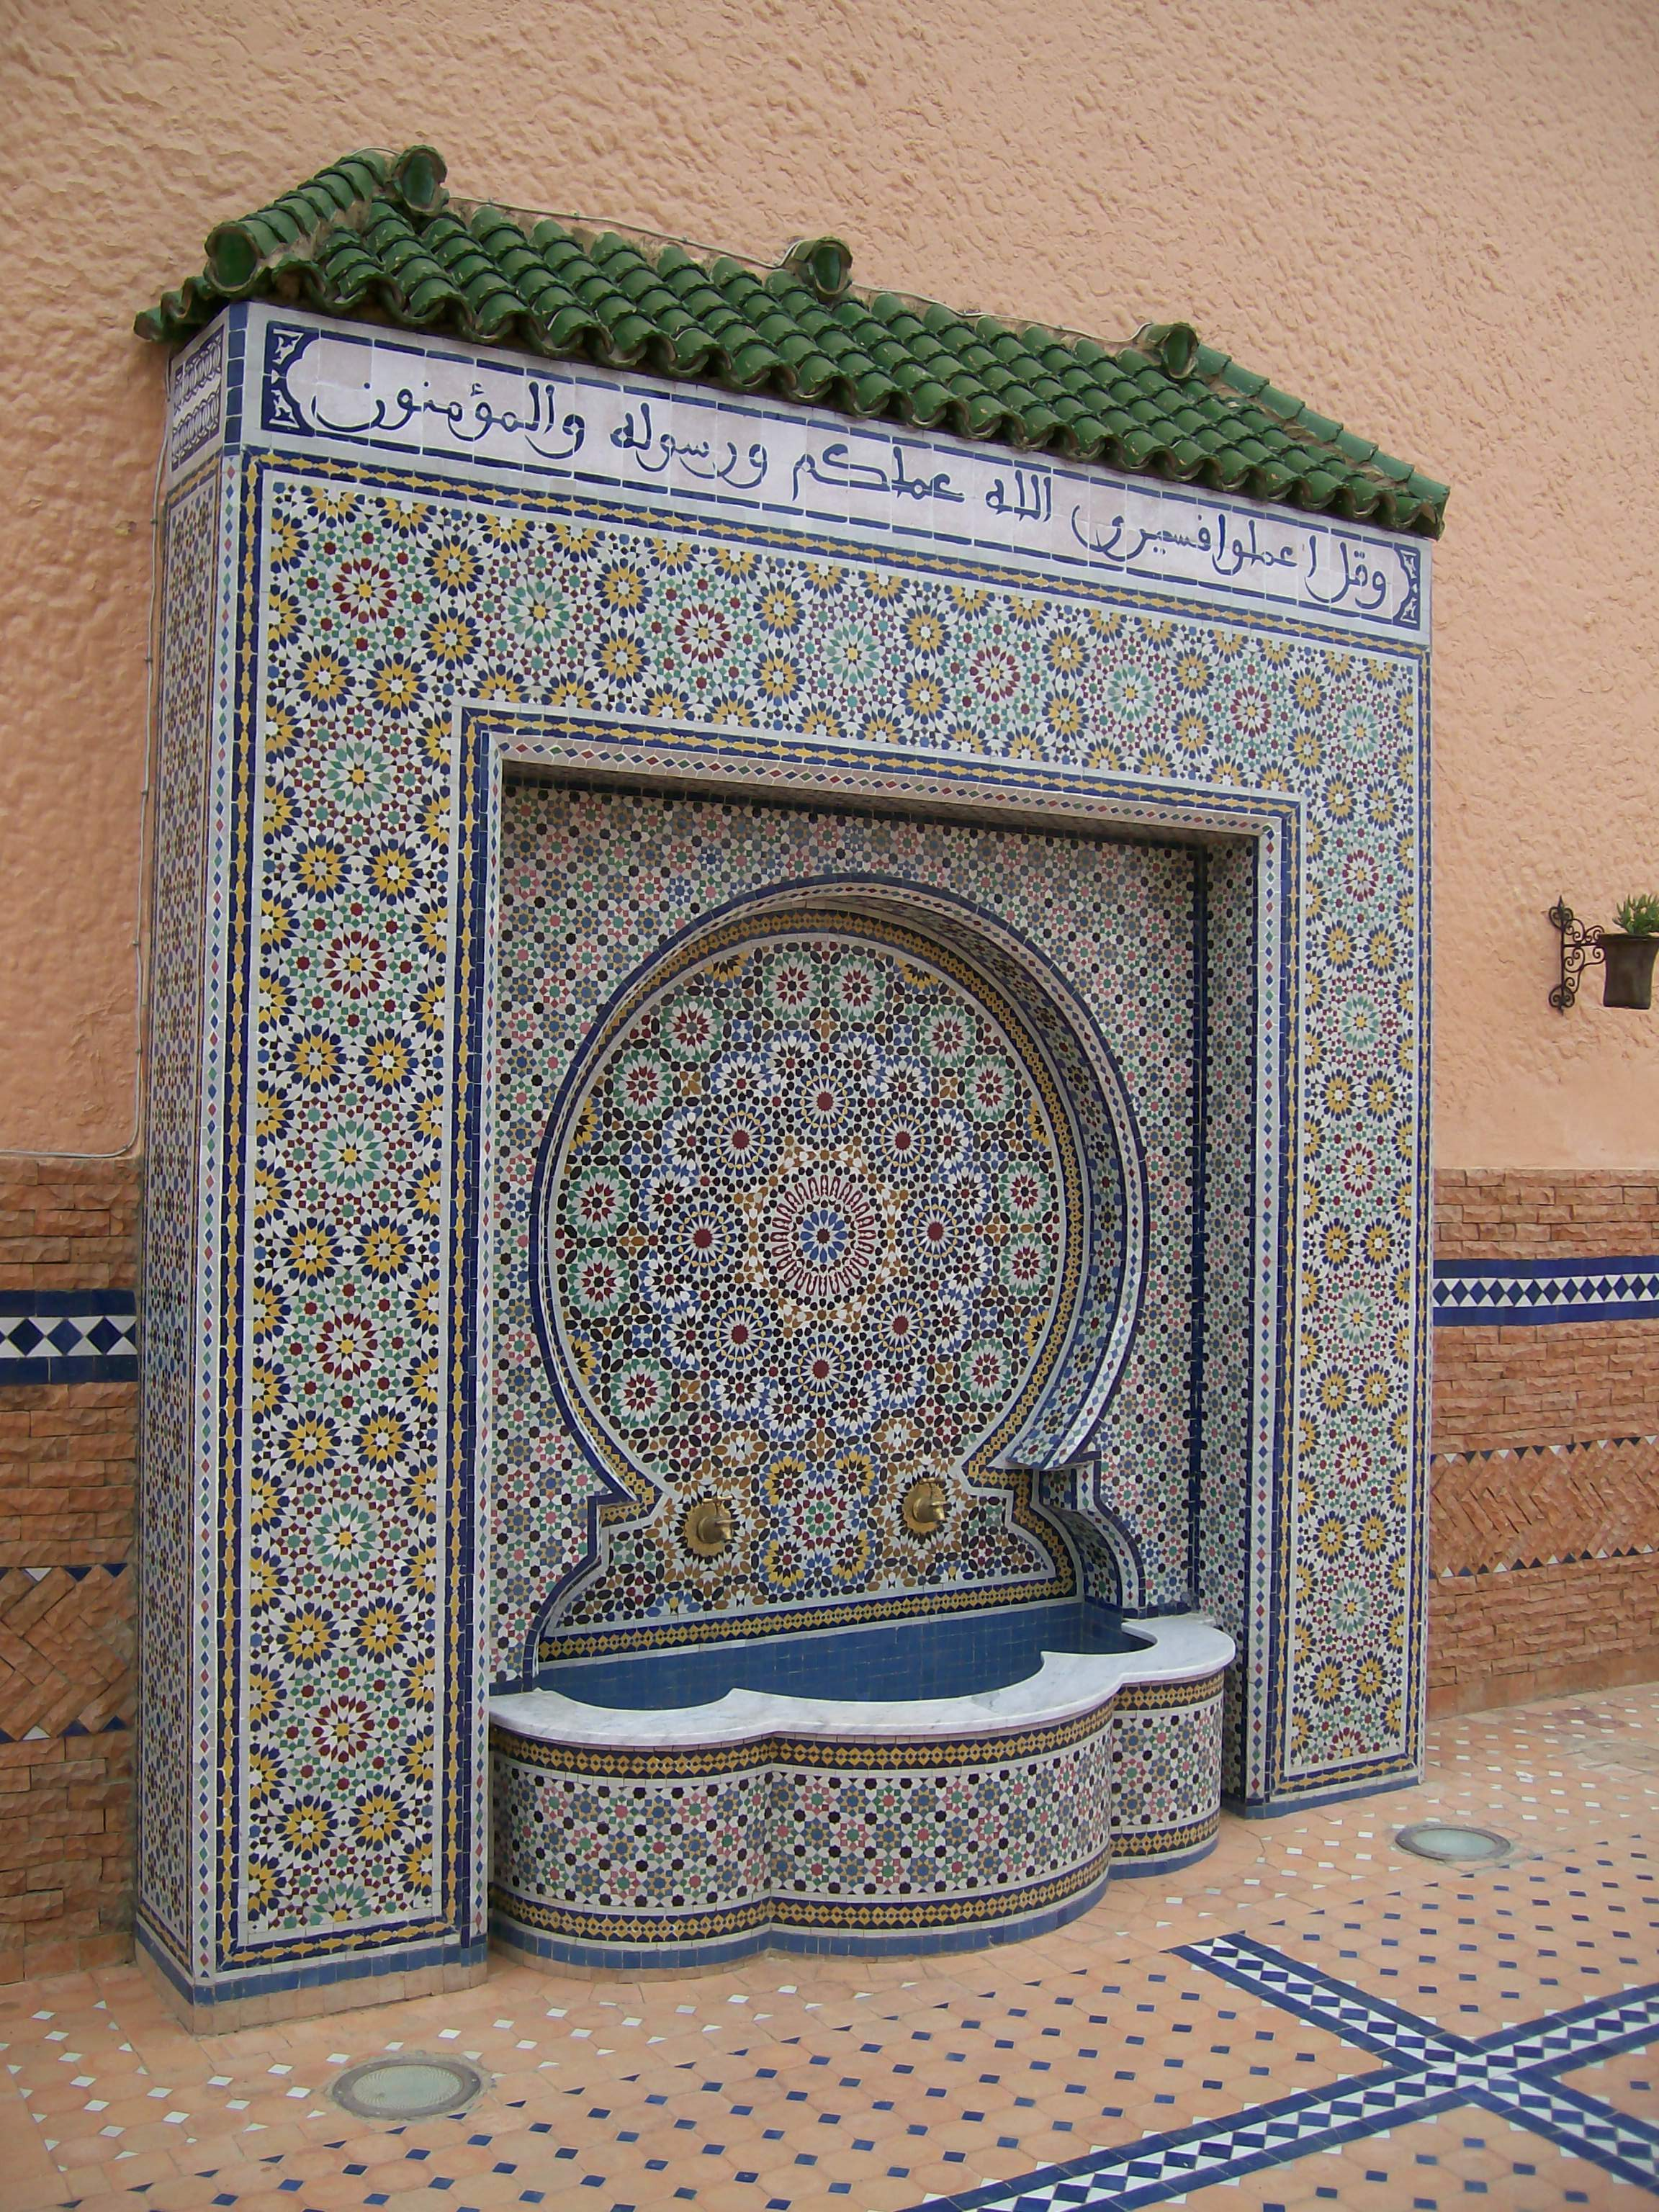 Islamic art: Chamber of Traditional Artisans in Mekne, A traditional Moroccan fountain formed with a series of small colored tiles in mosaic patterns.